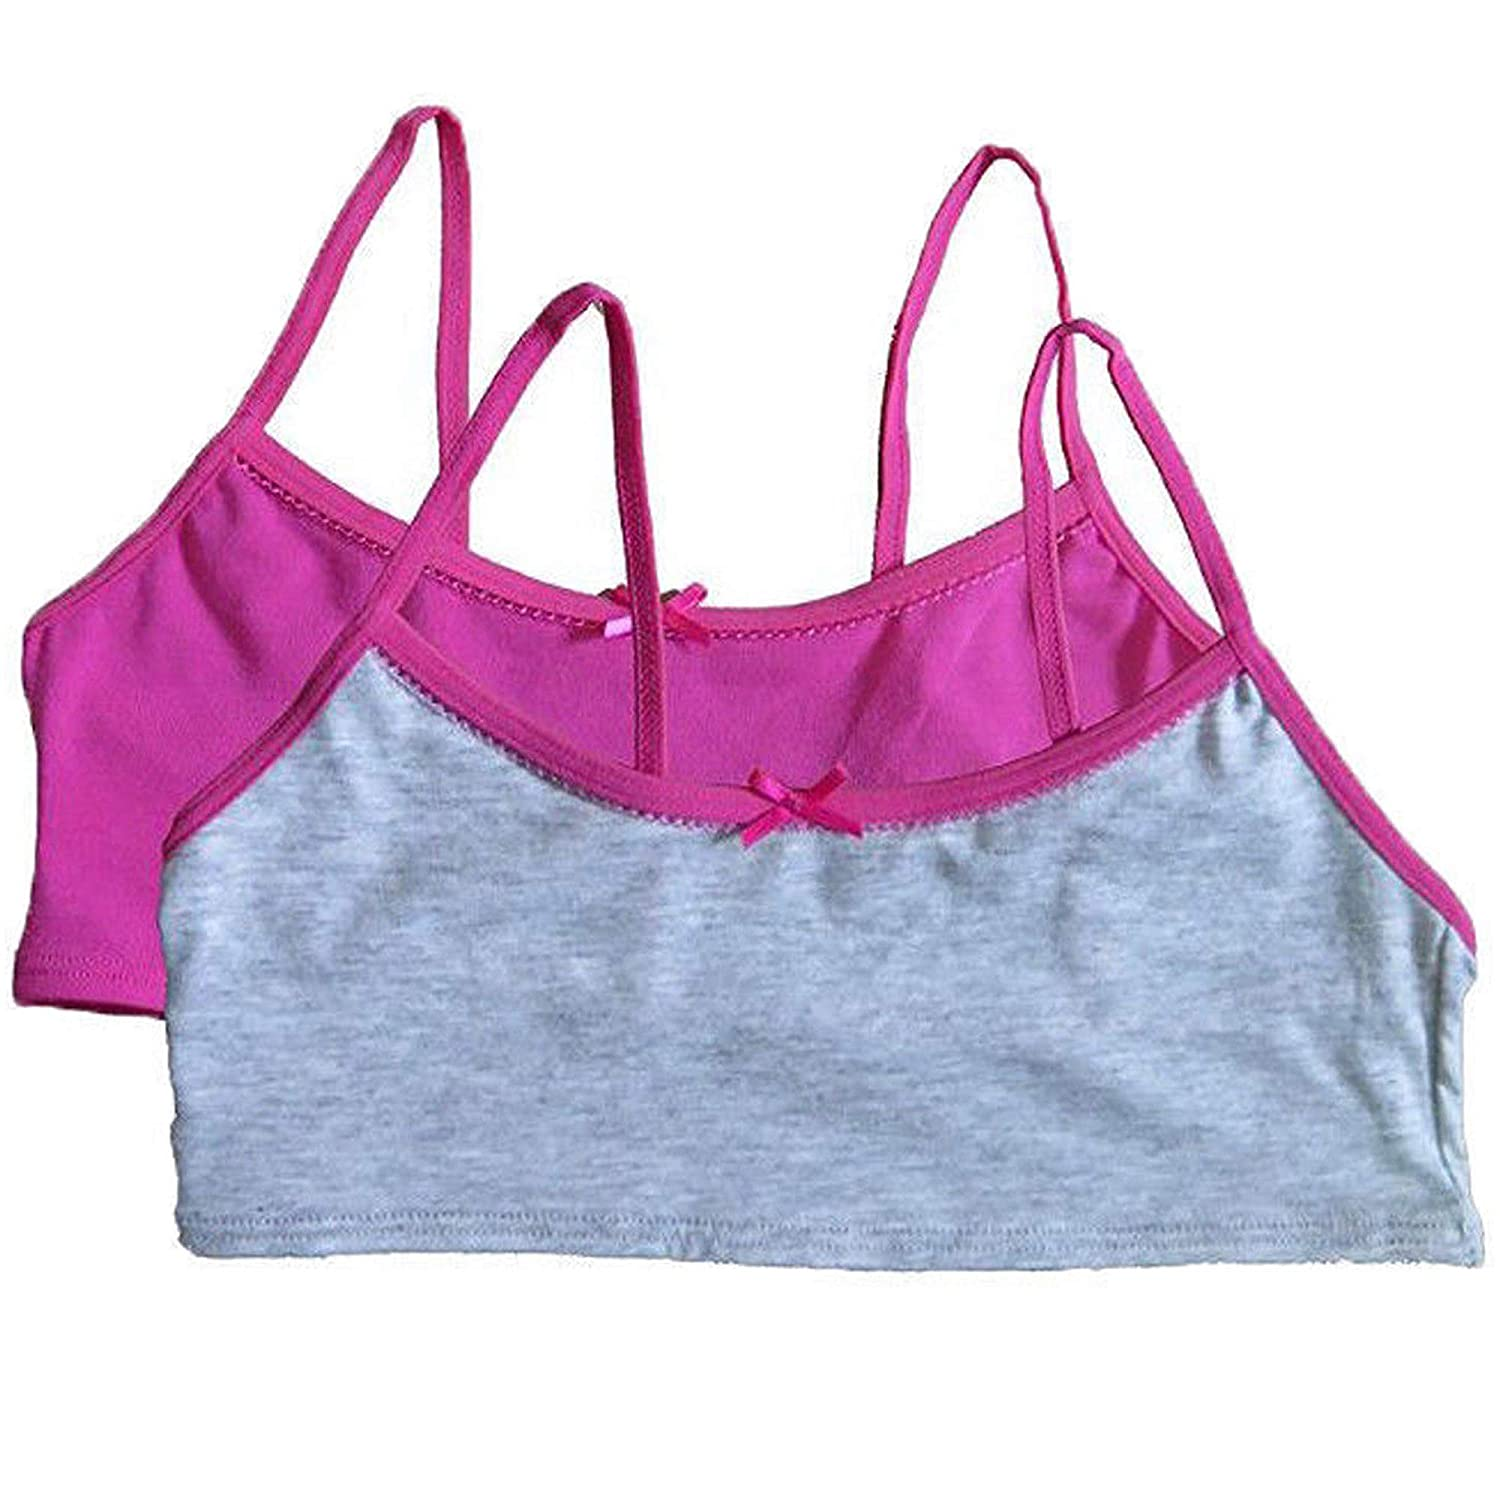 f63a47f88ef Amazon.com: Hanes Girl's Crop Top Bralette, small: Clothing